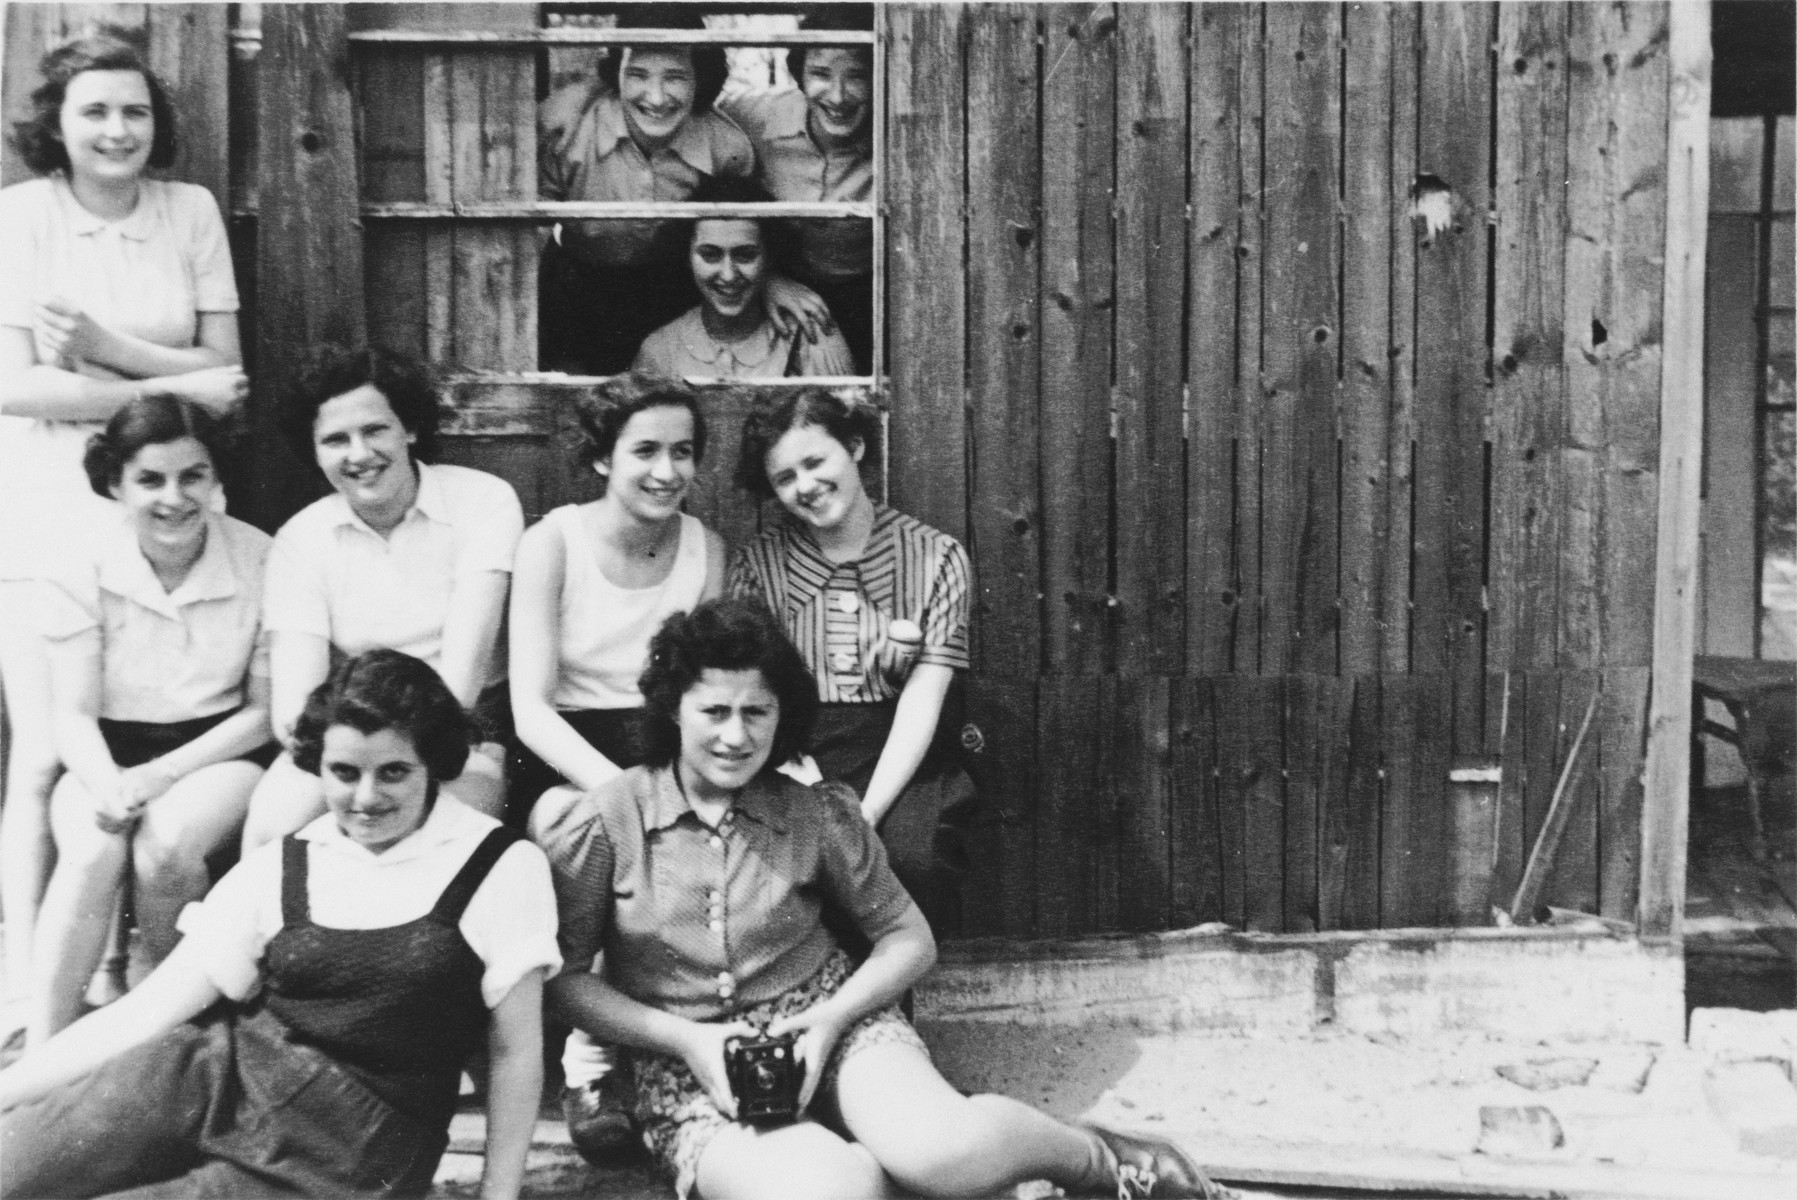 Group portrait of German-Jewish teenage girls in front of a rustic wooden building while on a Sunday outing to the country.  Among those pictured is Ruth Cohn.  She left on a Kindertransport to England two months later.